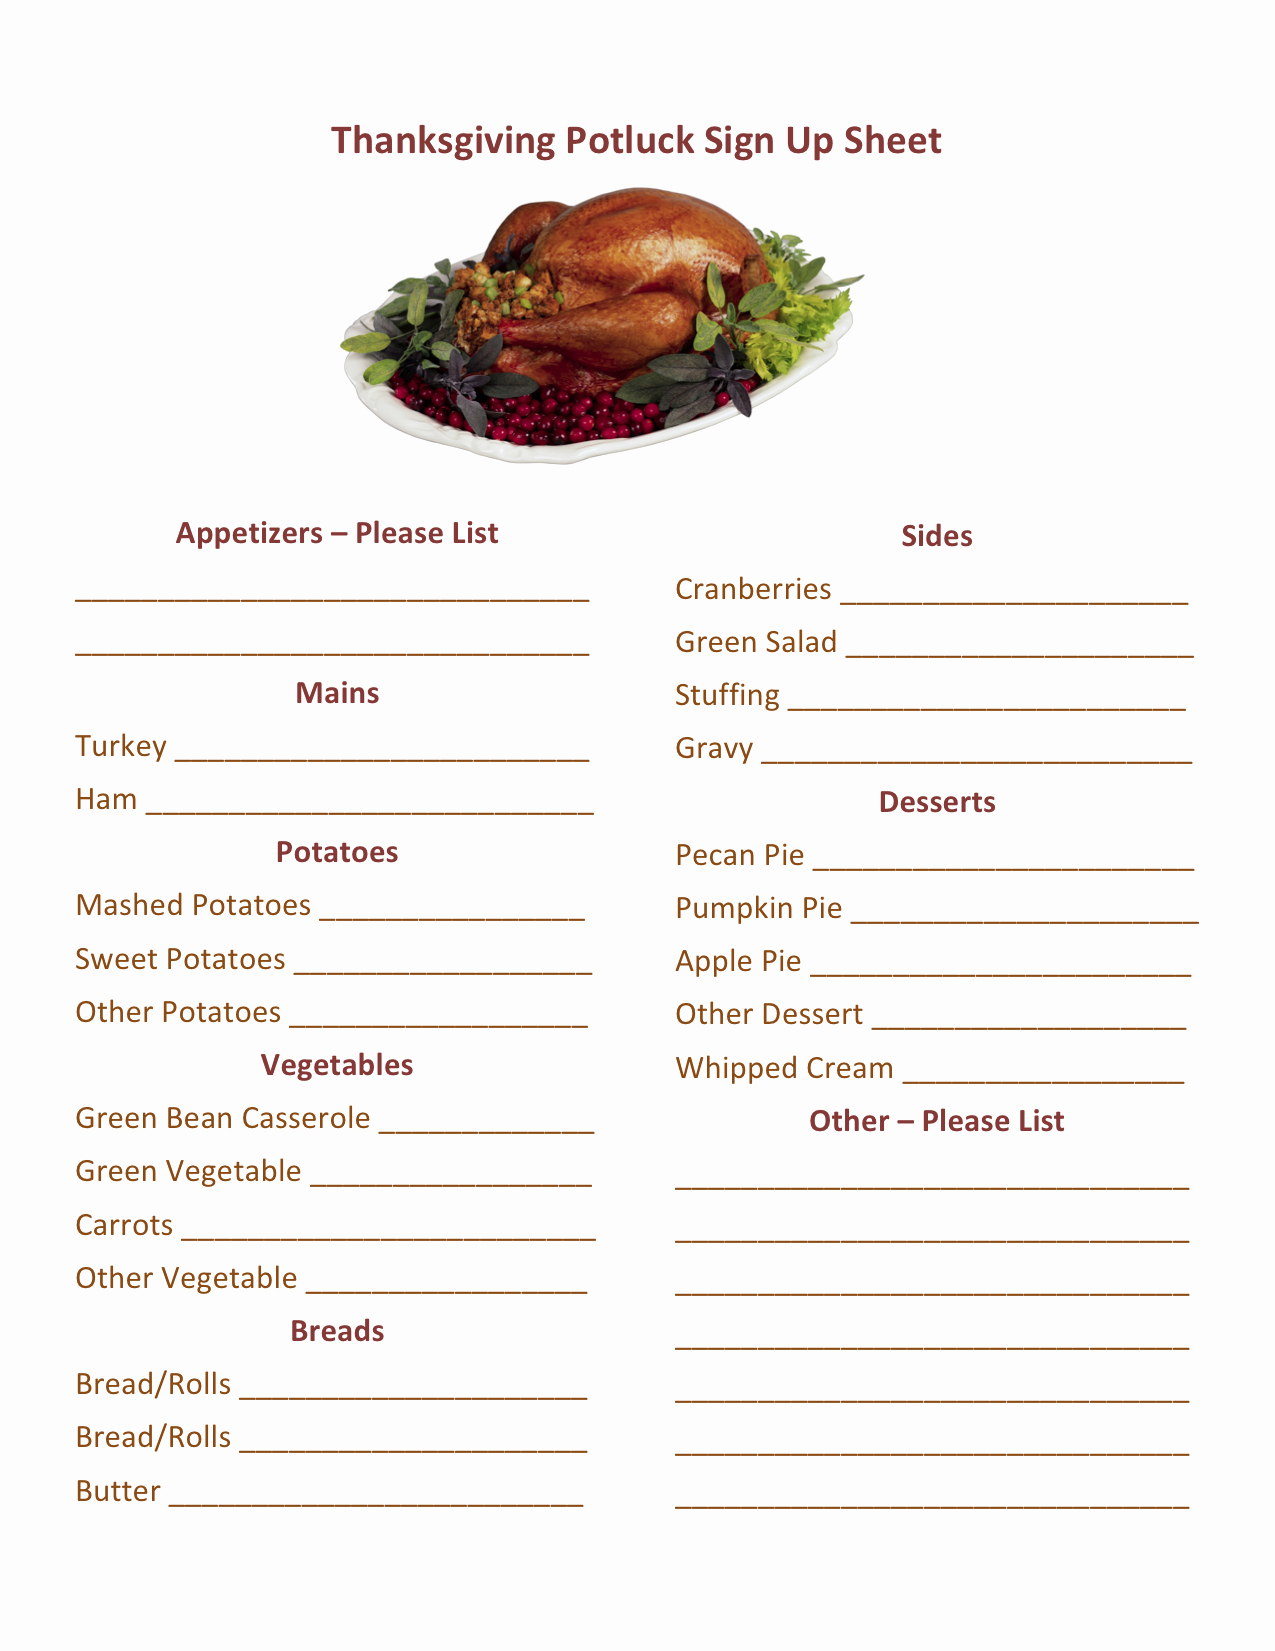 Halloween Potluck Signup Sheet Template New Thanksgiving Potluck Sign Up Printable